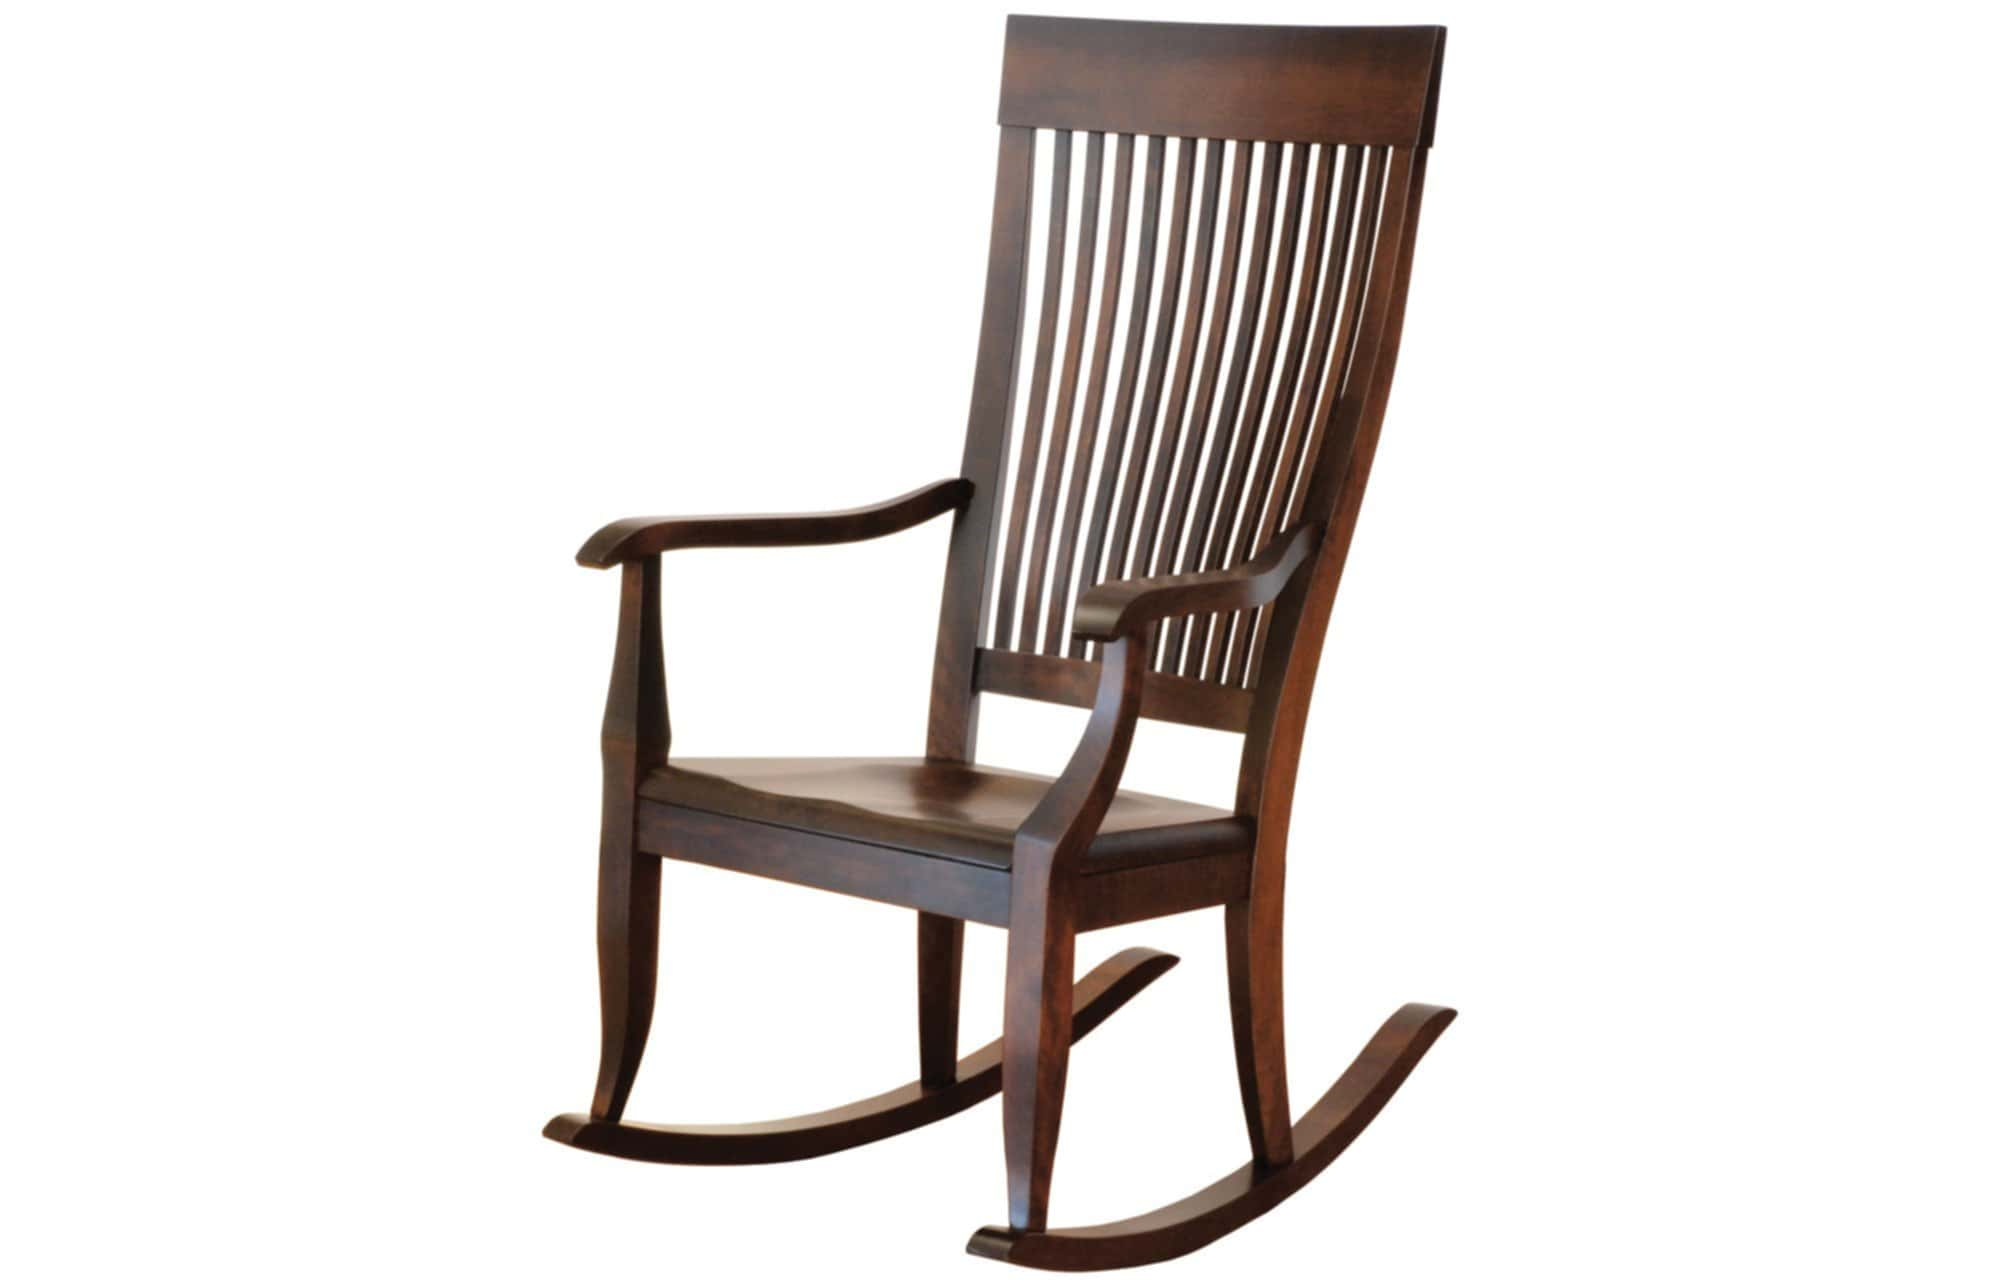 Toddler Rocking Chair Design